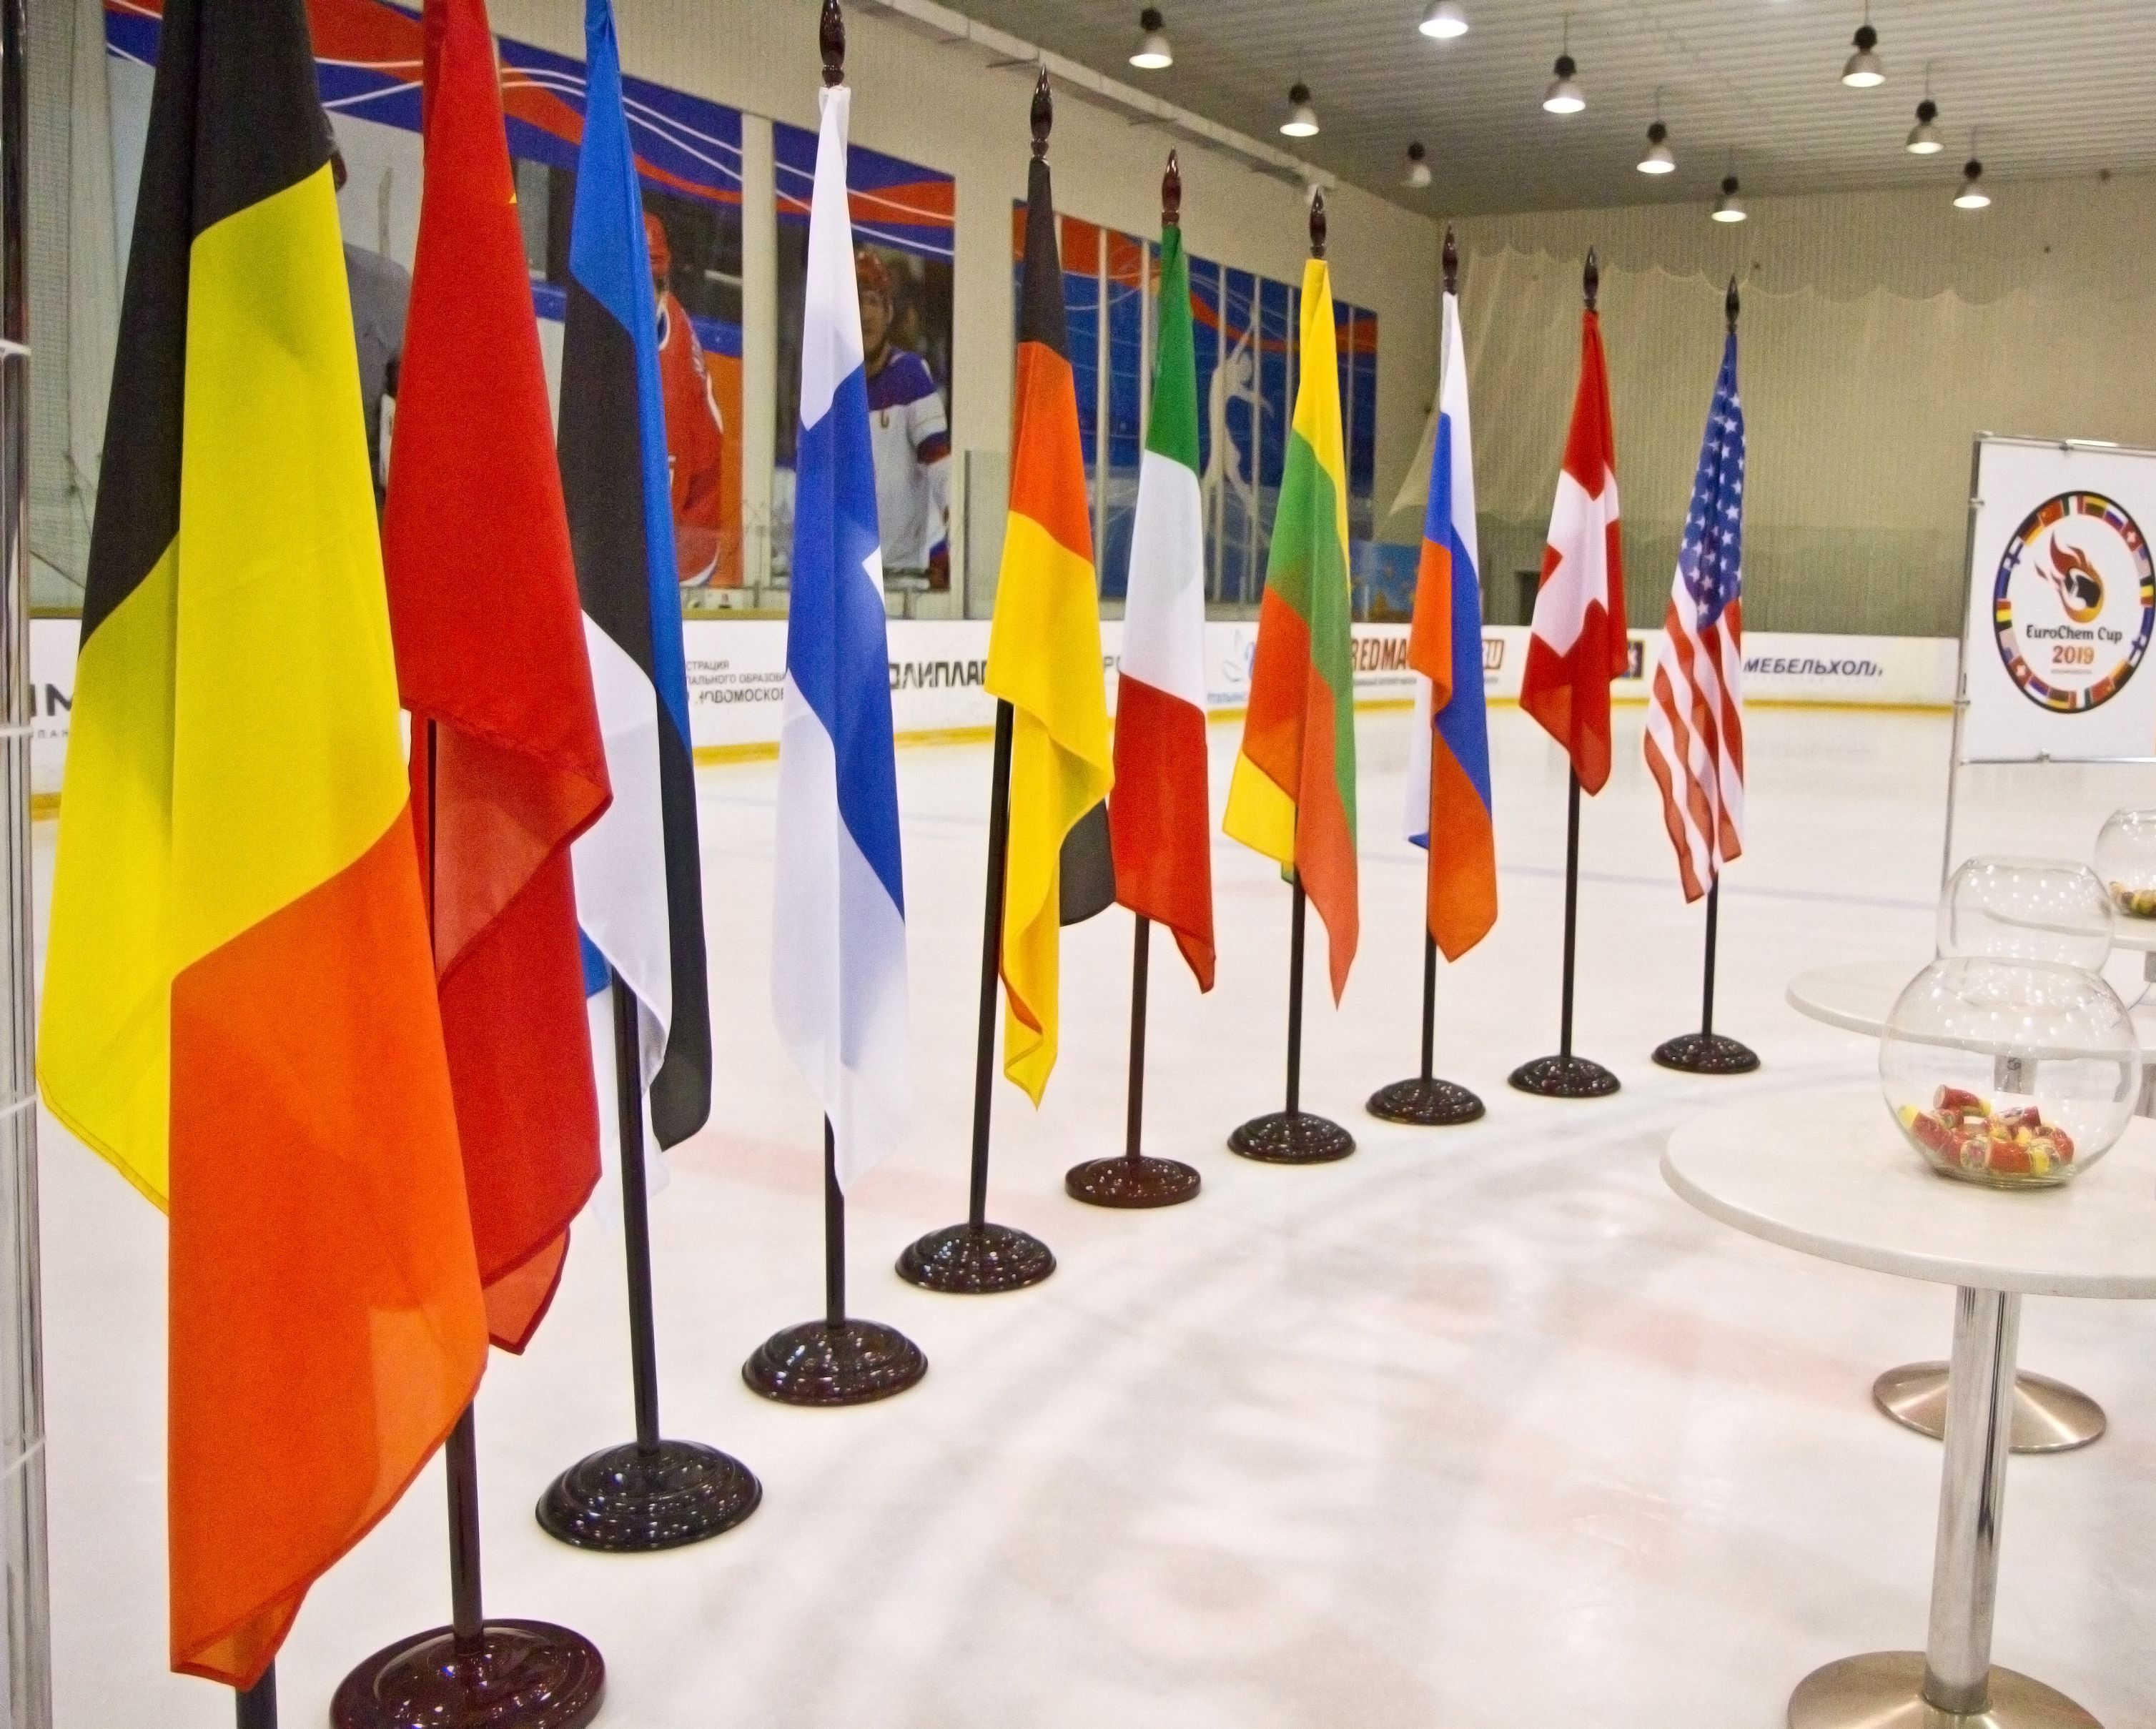 EuroChem Cup ice hockey tournament expands to China, Italy for 2019